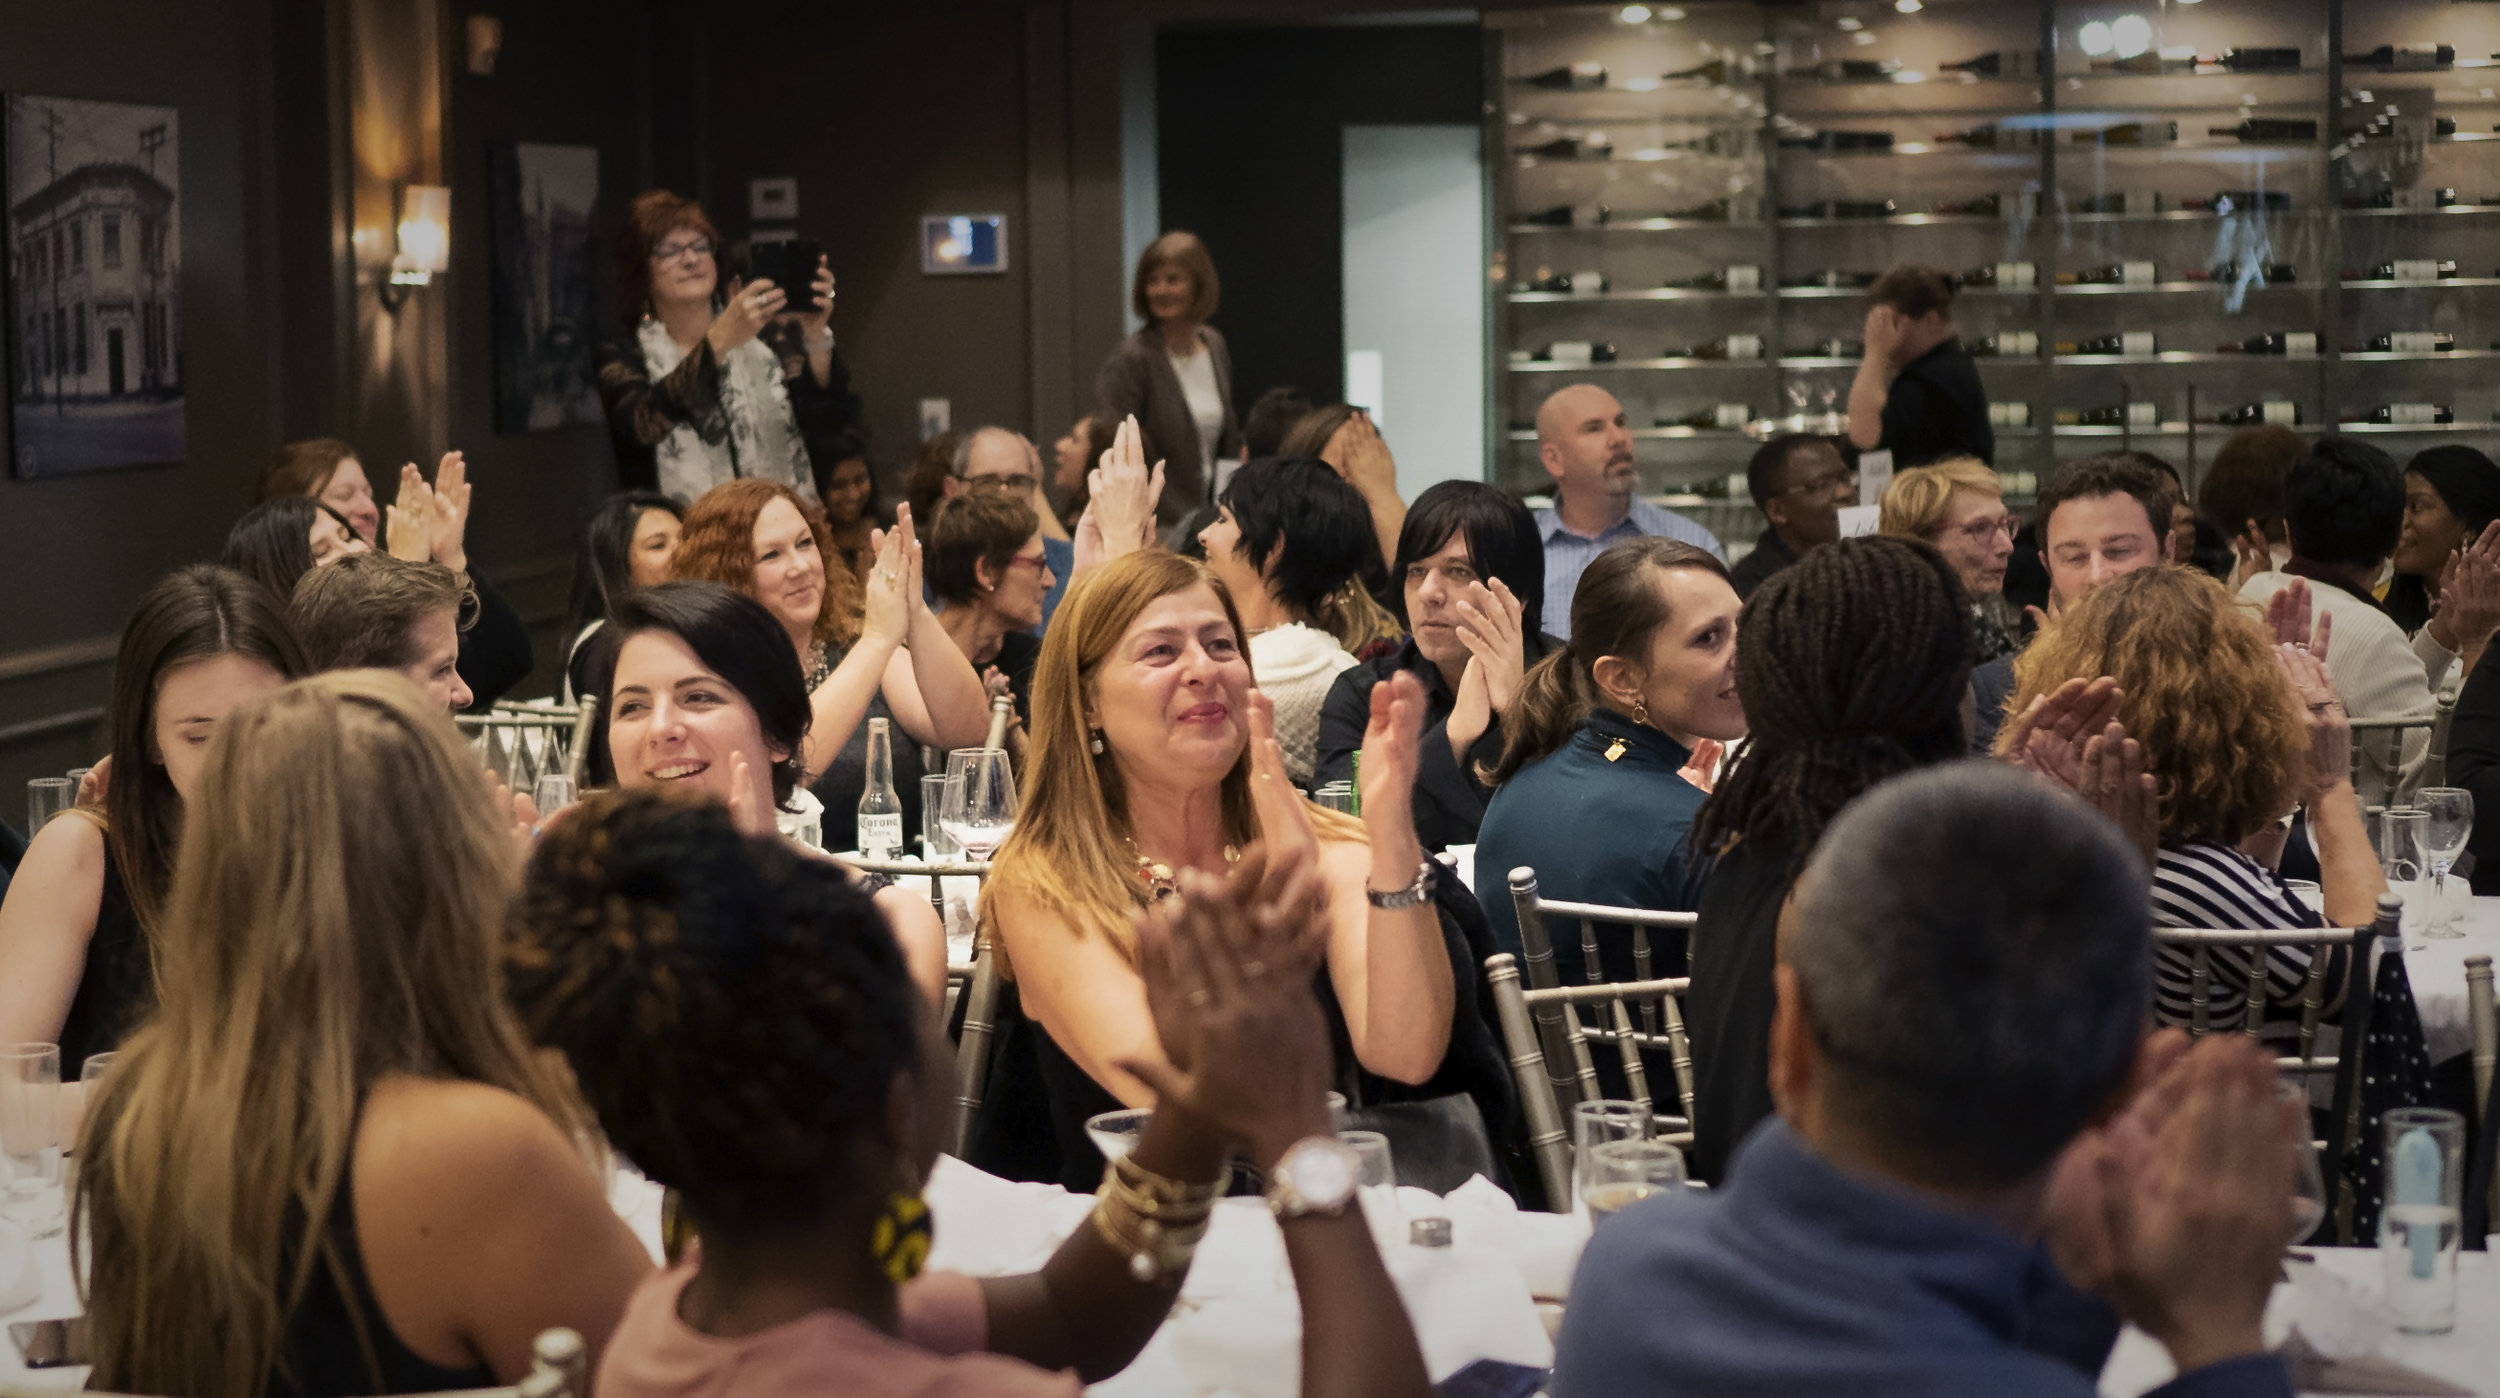 STAFF RECOGNITION AND WELLNESS ANNUAL END-OF YEAR EVENT (2018)